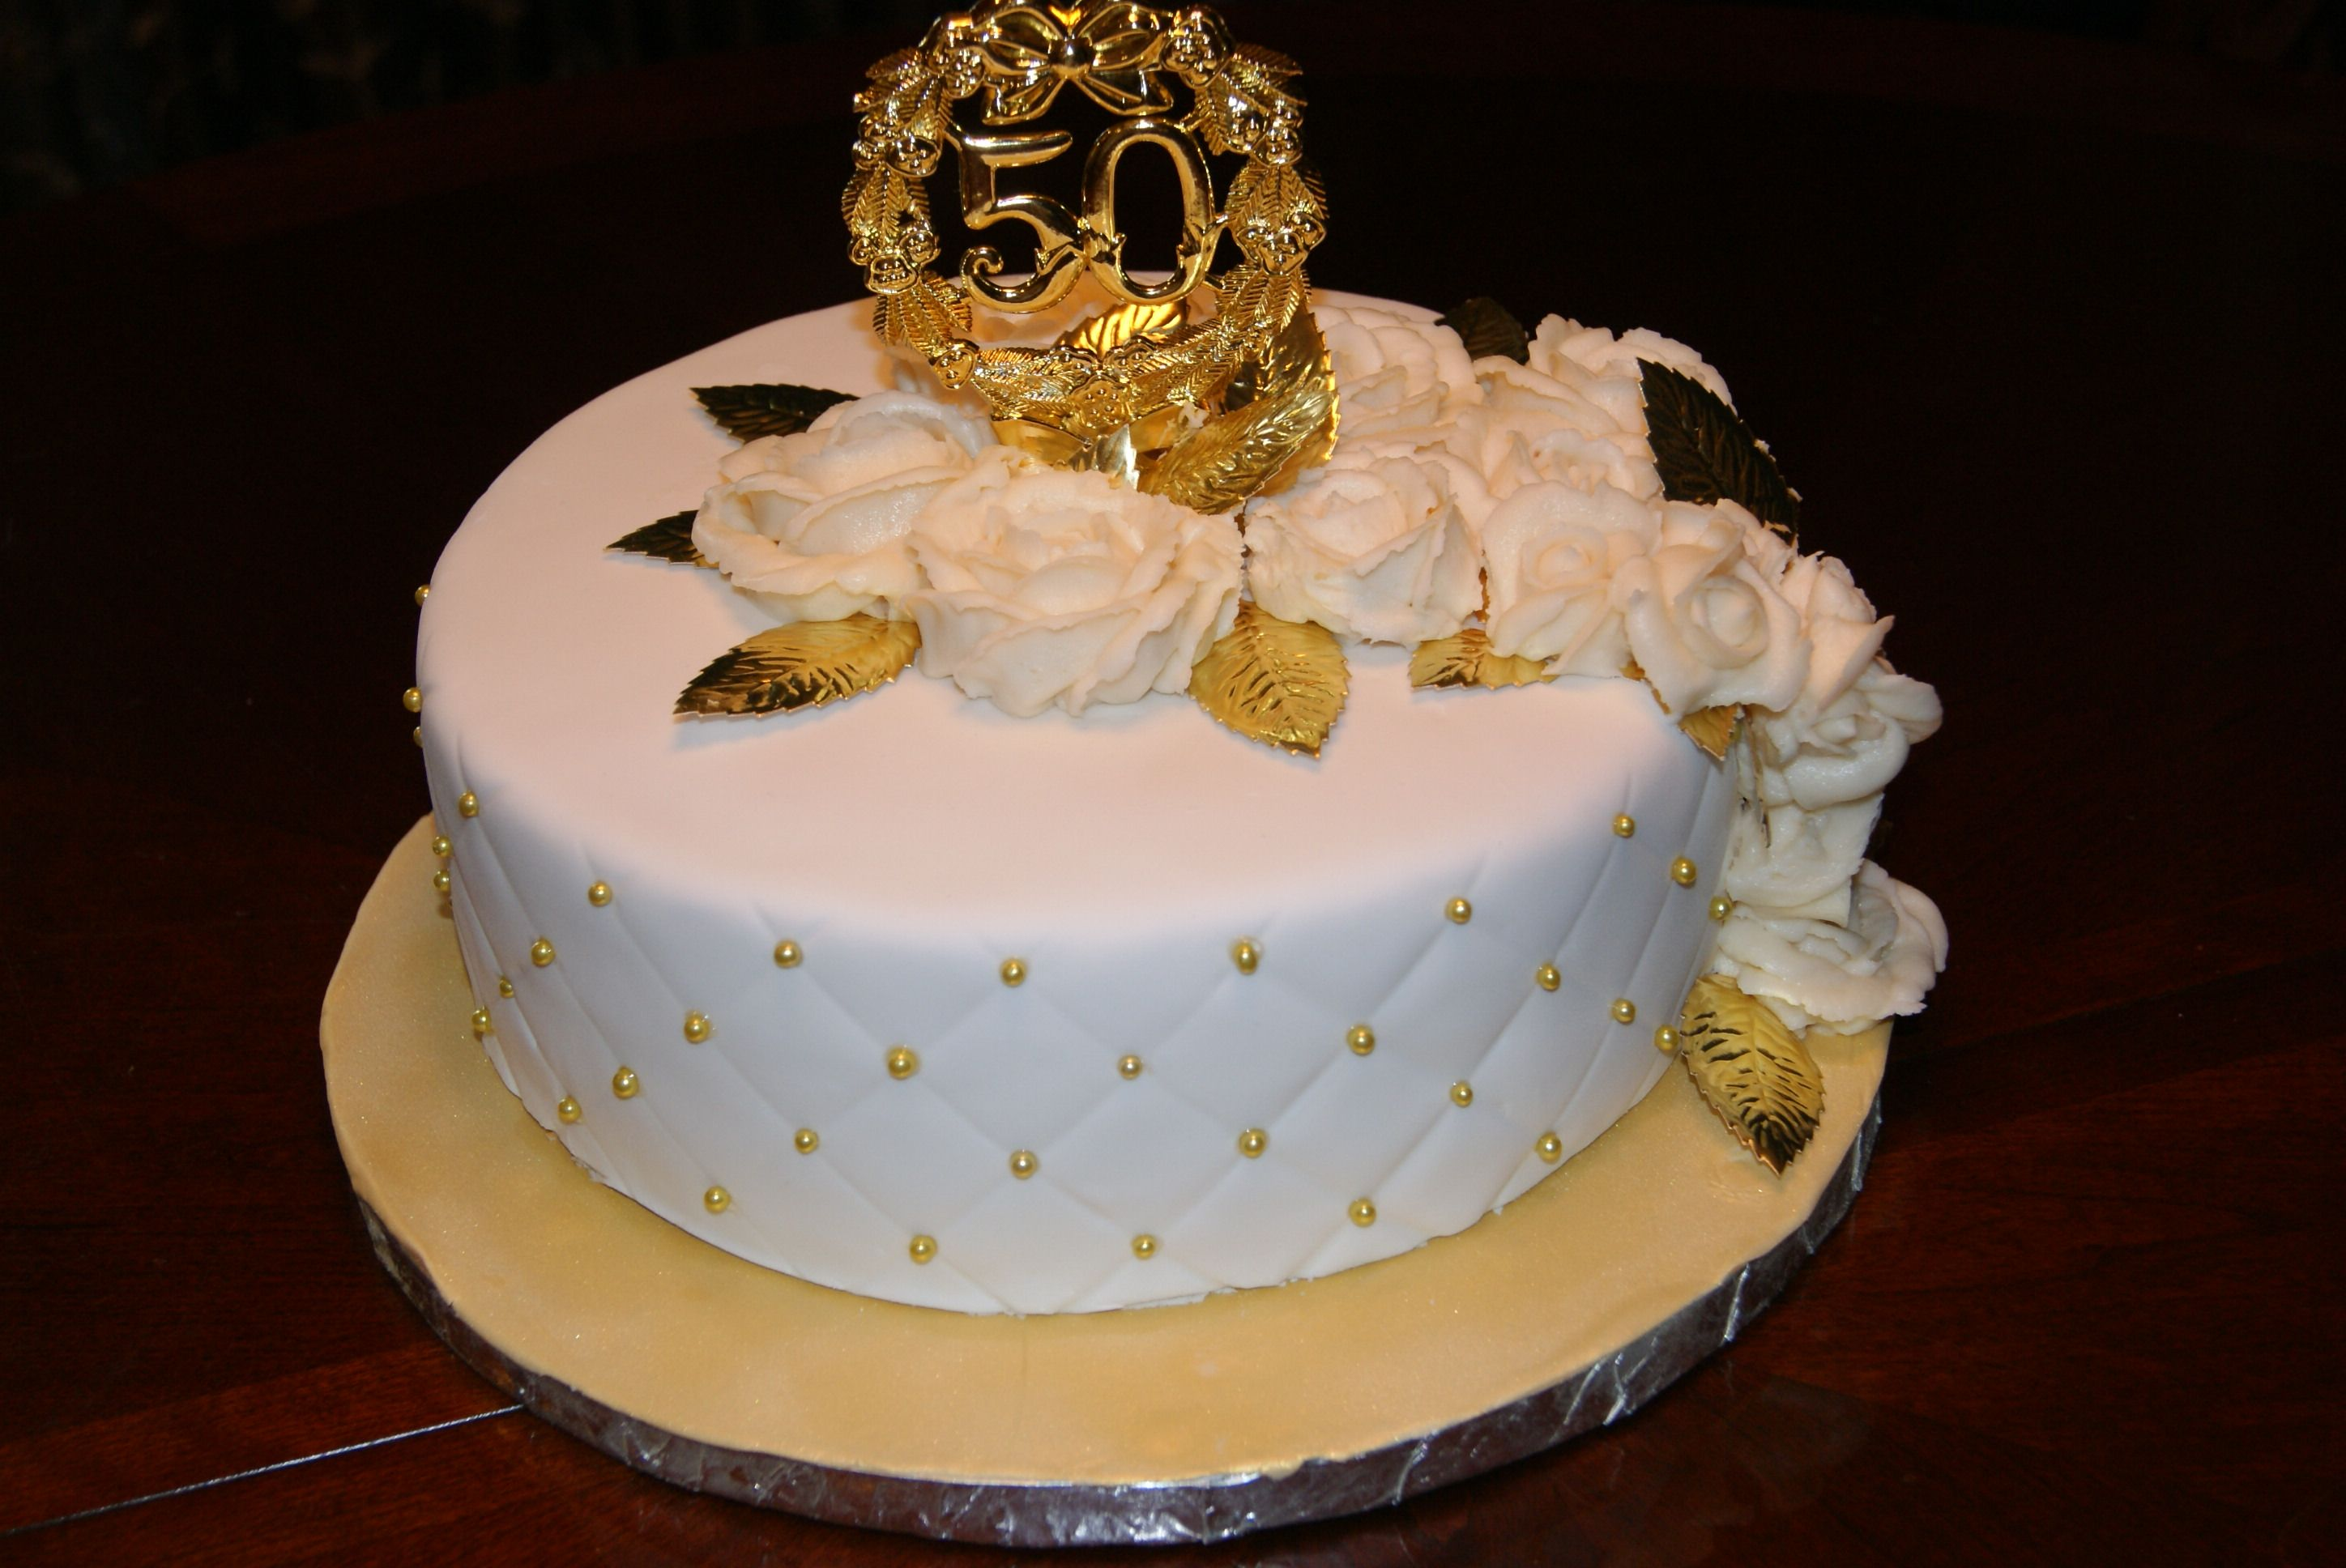 Th wedding anniversary cakes best wedding source gallery